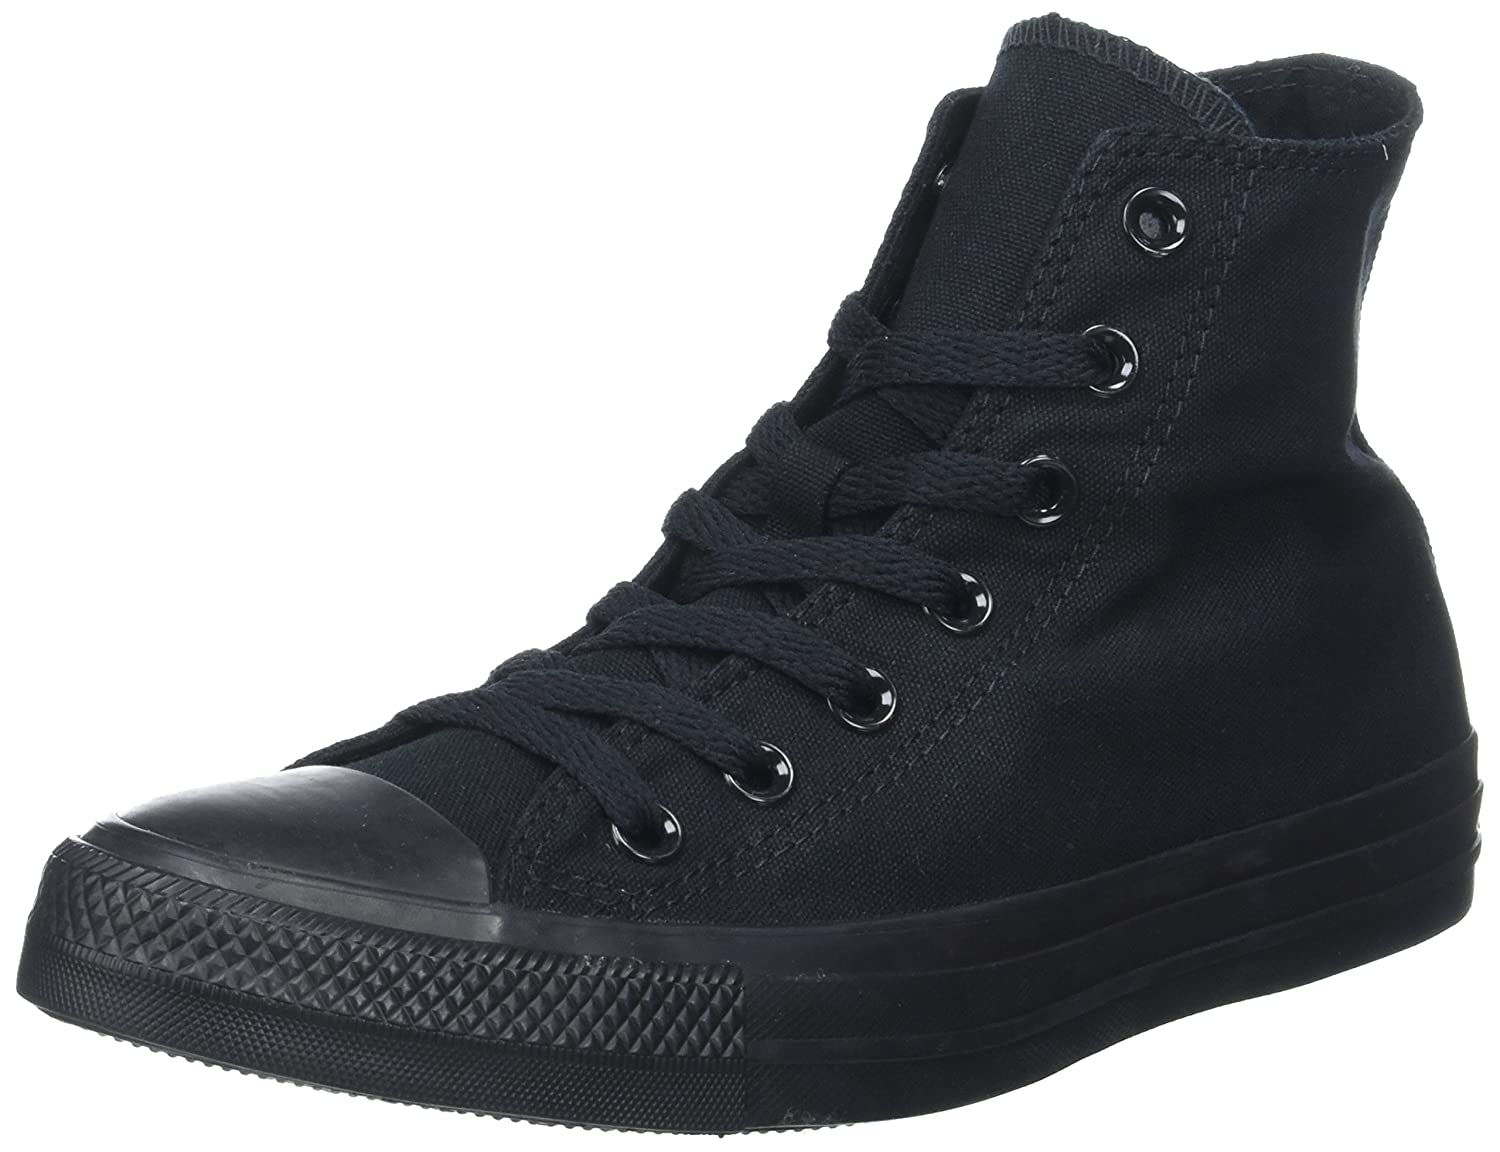 Converse AS Hi Can charcoal 1J793 Unisex-Erwachsene Sneaker  3 M UK Gro?es Art|Schwarz